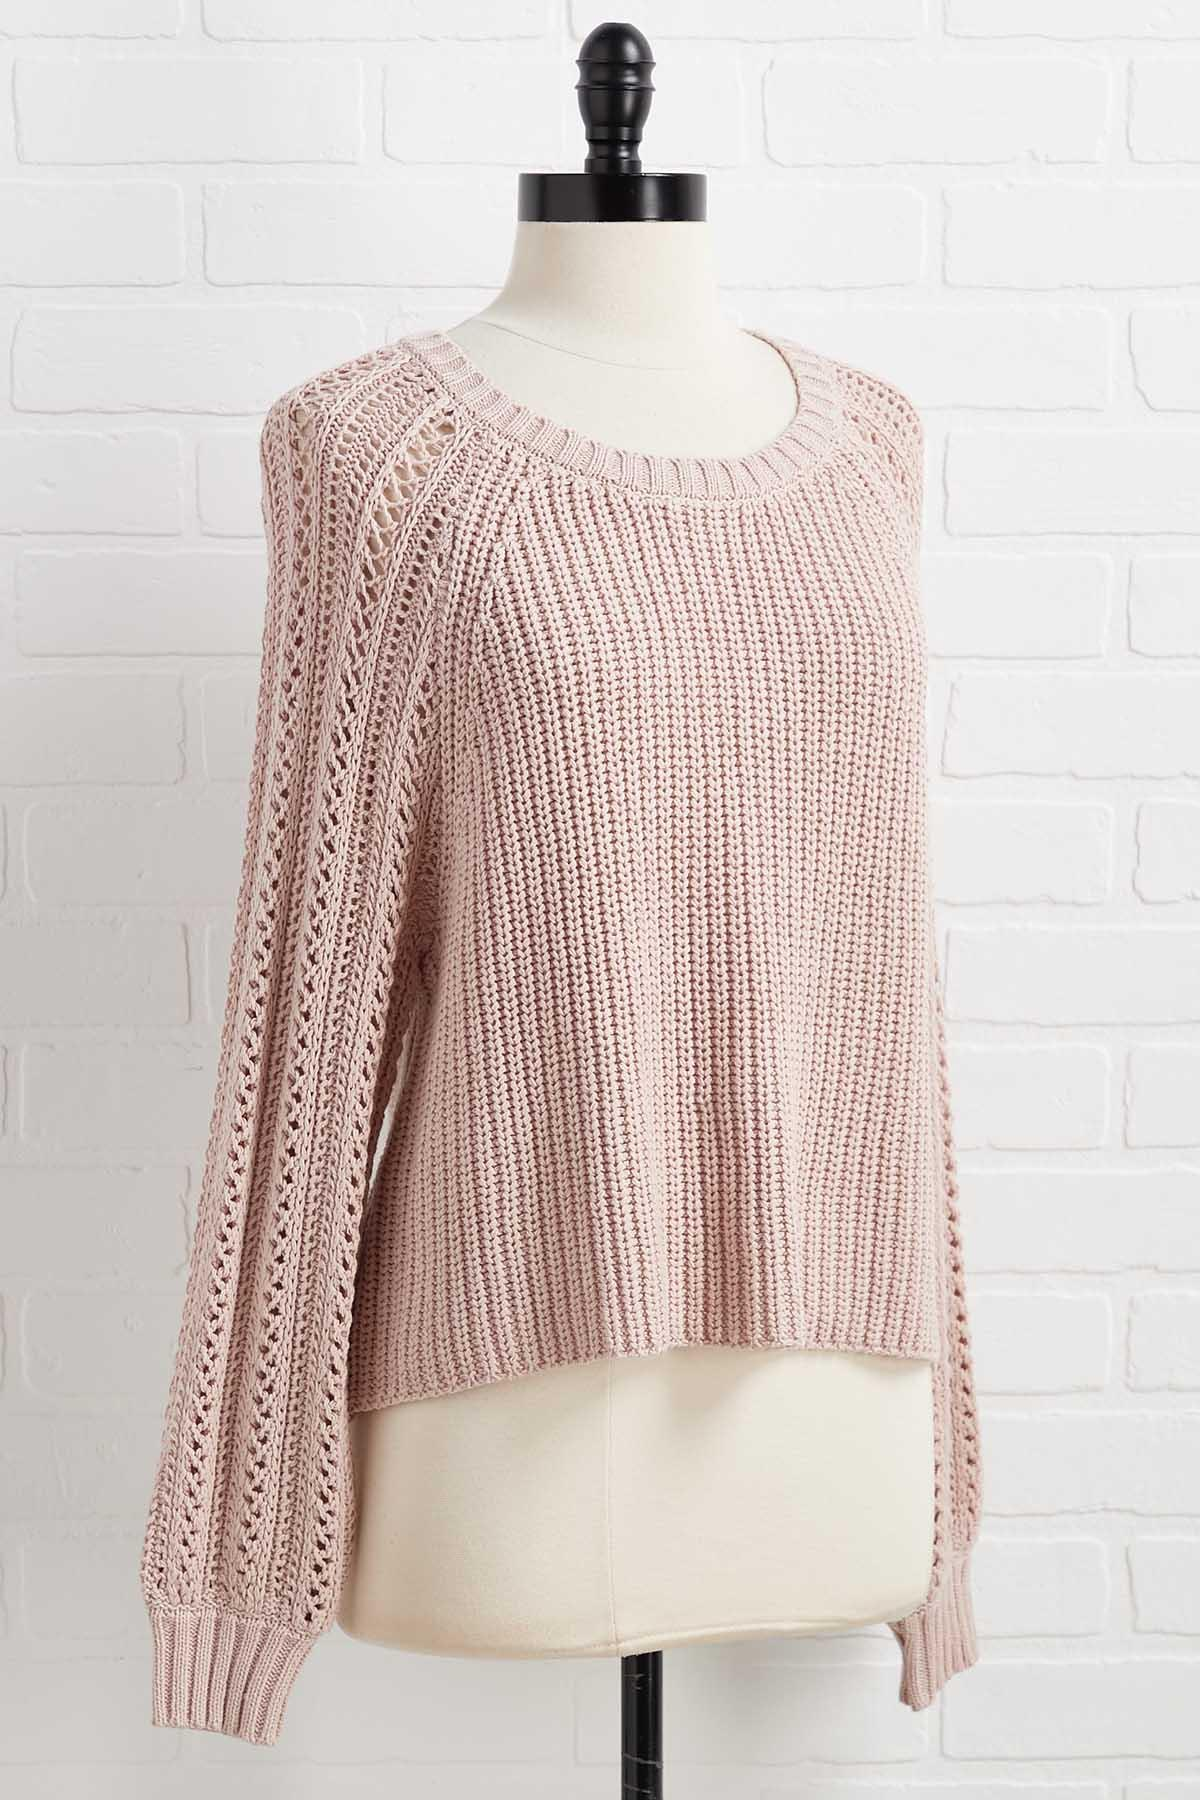 All About Autumn Sweater